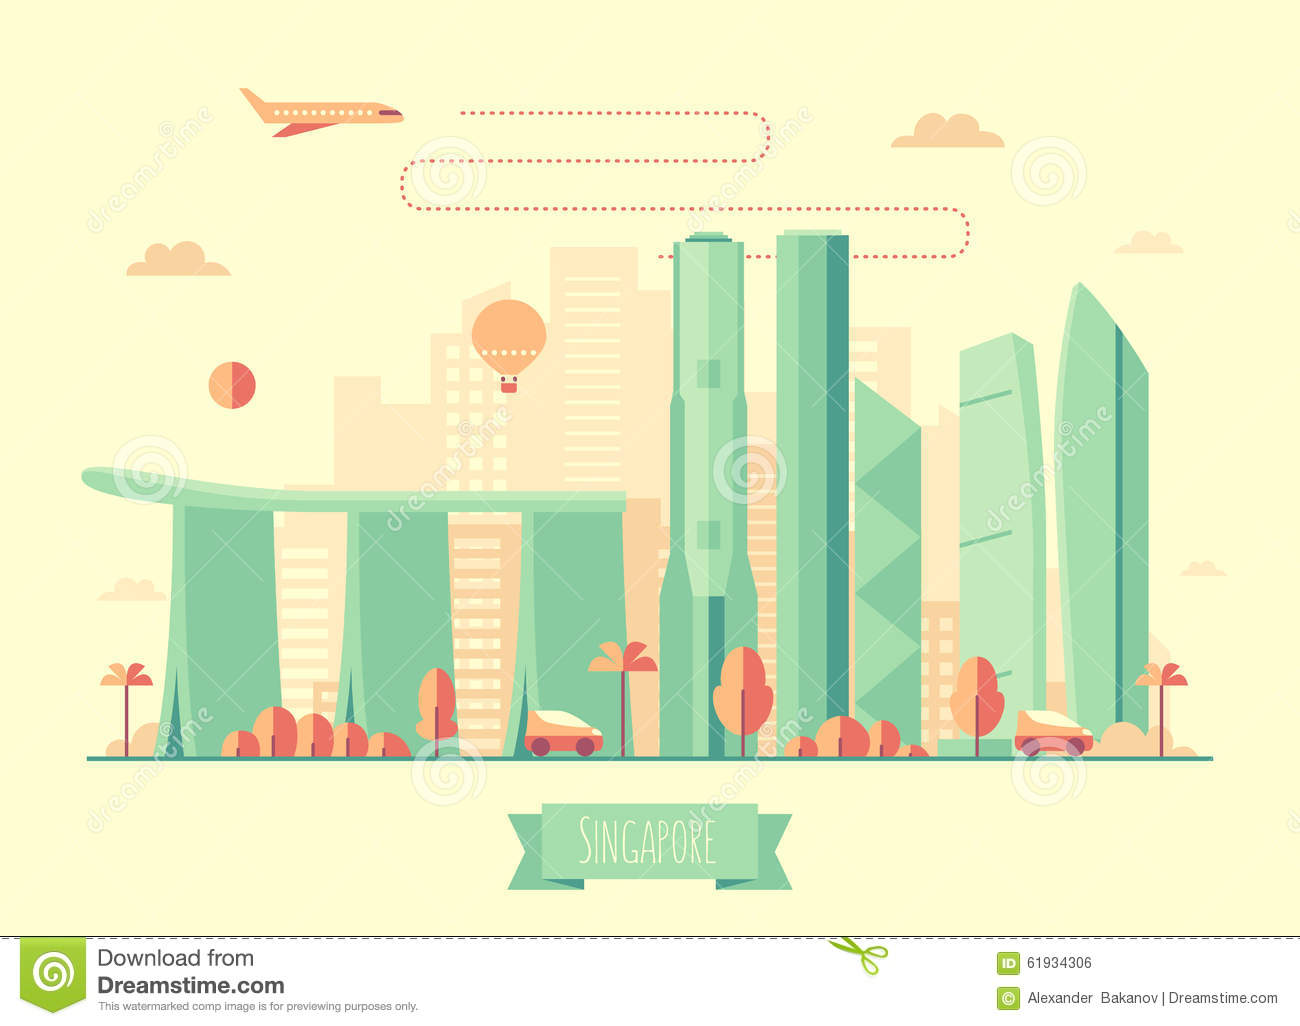 Architectual Illustrations Singapore Skyline Architecture Illustration Flat Stock